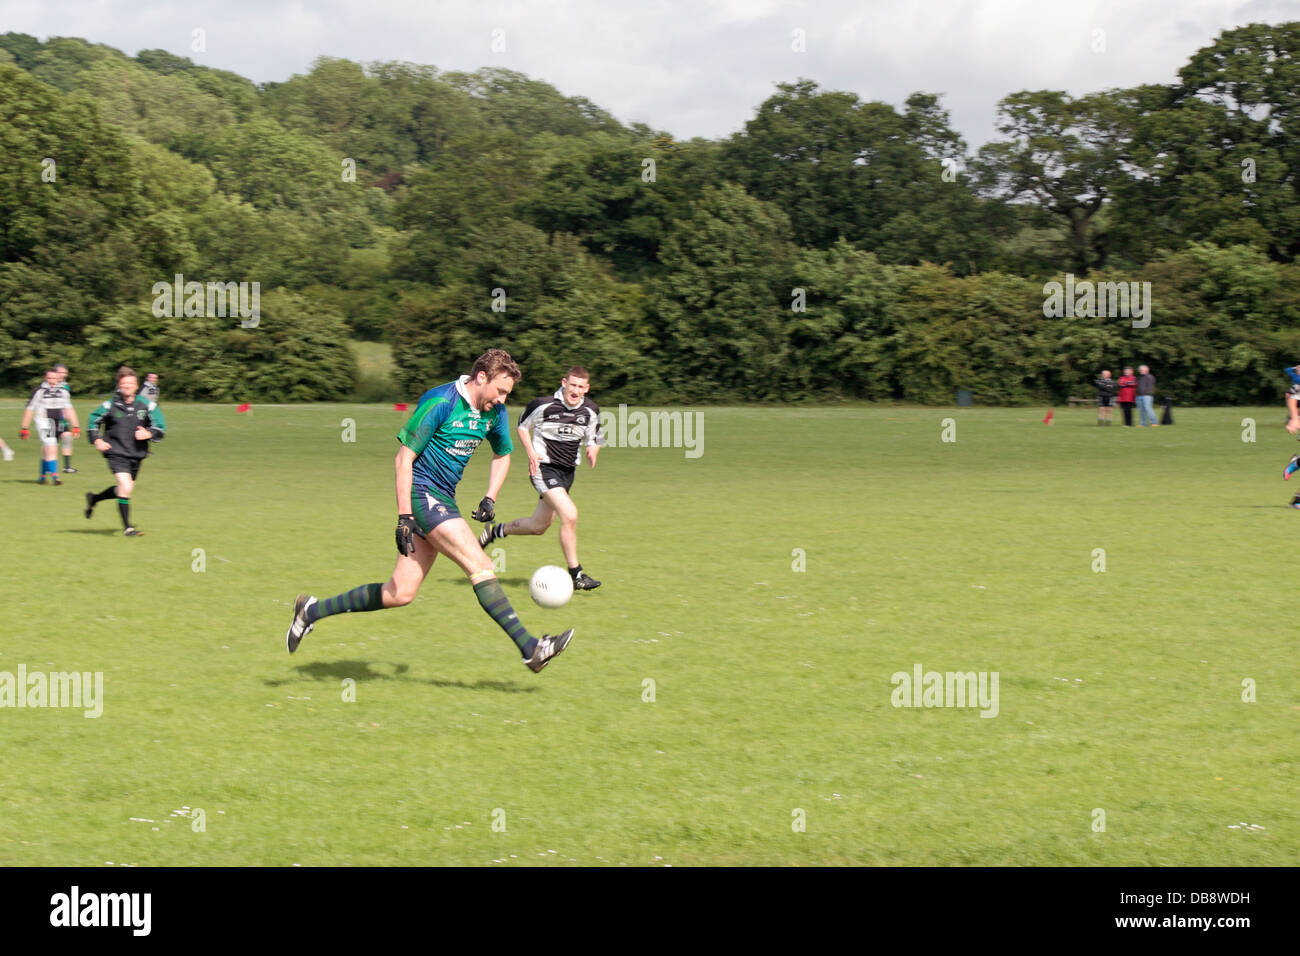 Men playing Gaelic sports (Gaelic football) being played in England at the Tir Chonaill Gaels club in Greenford, Stock Photo